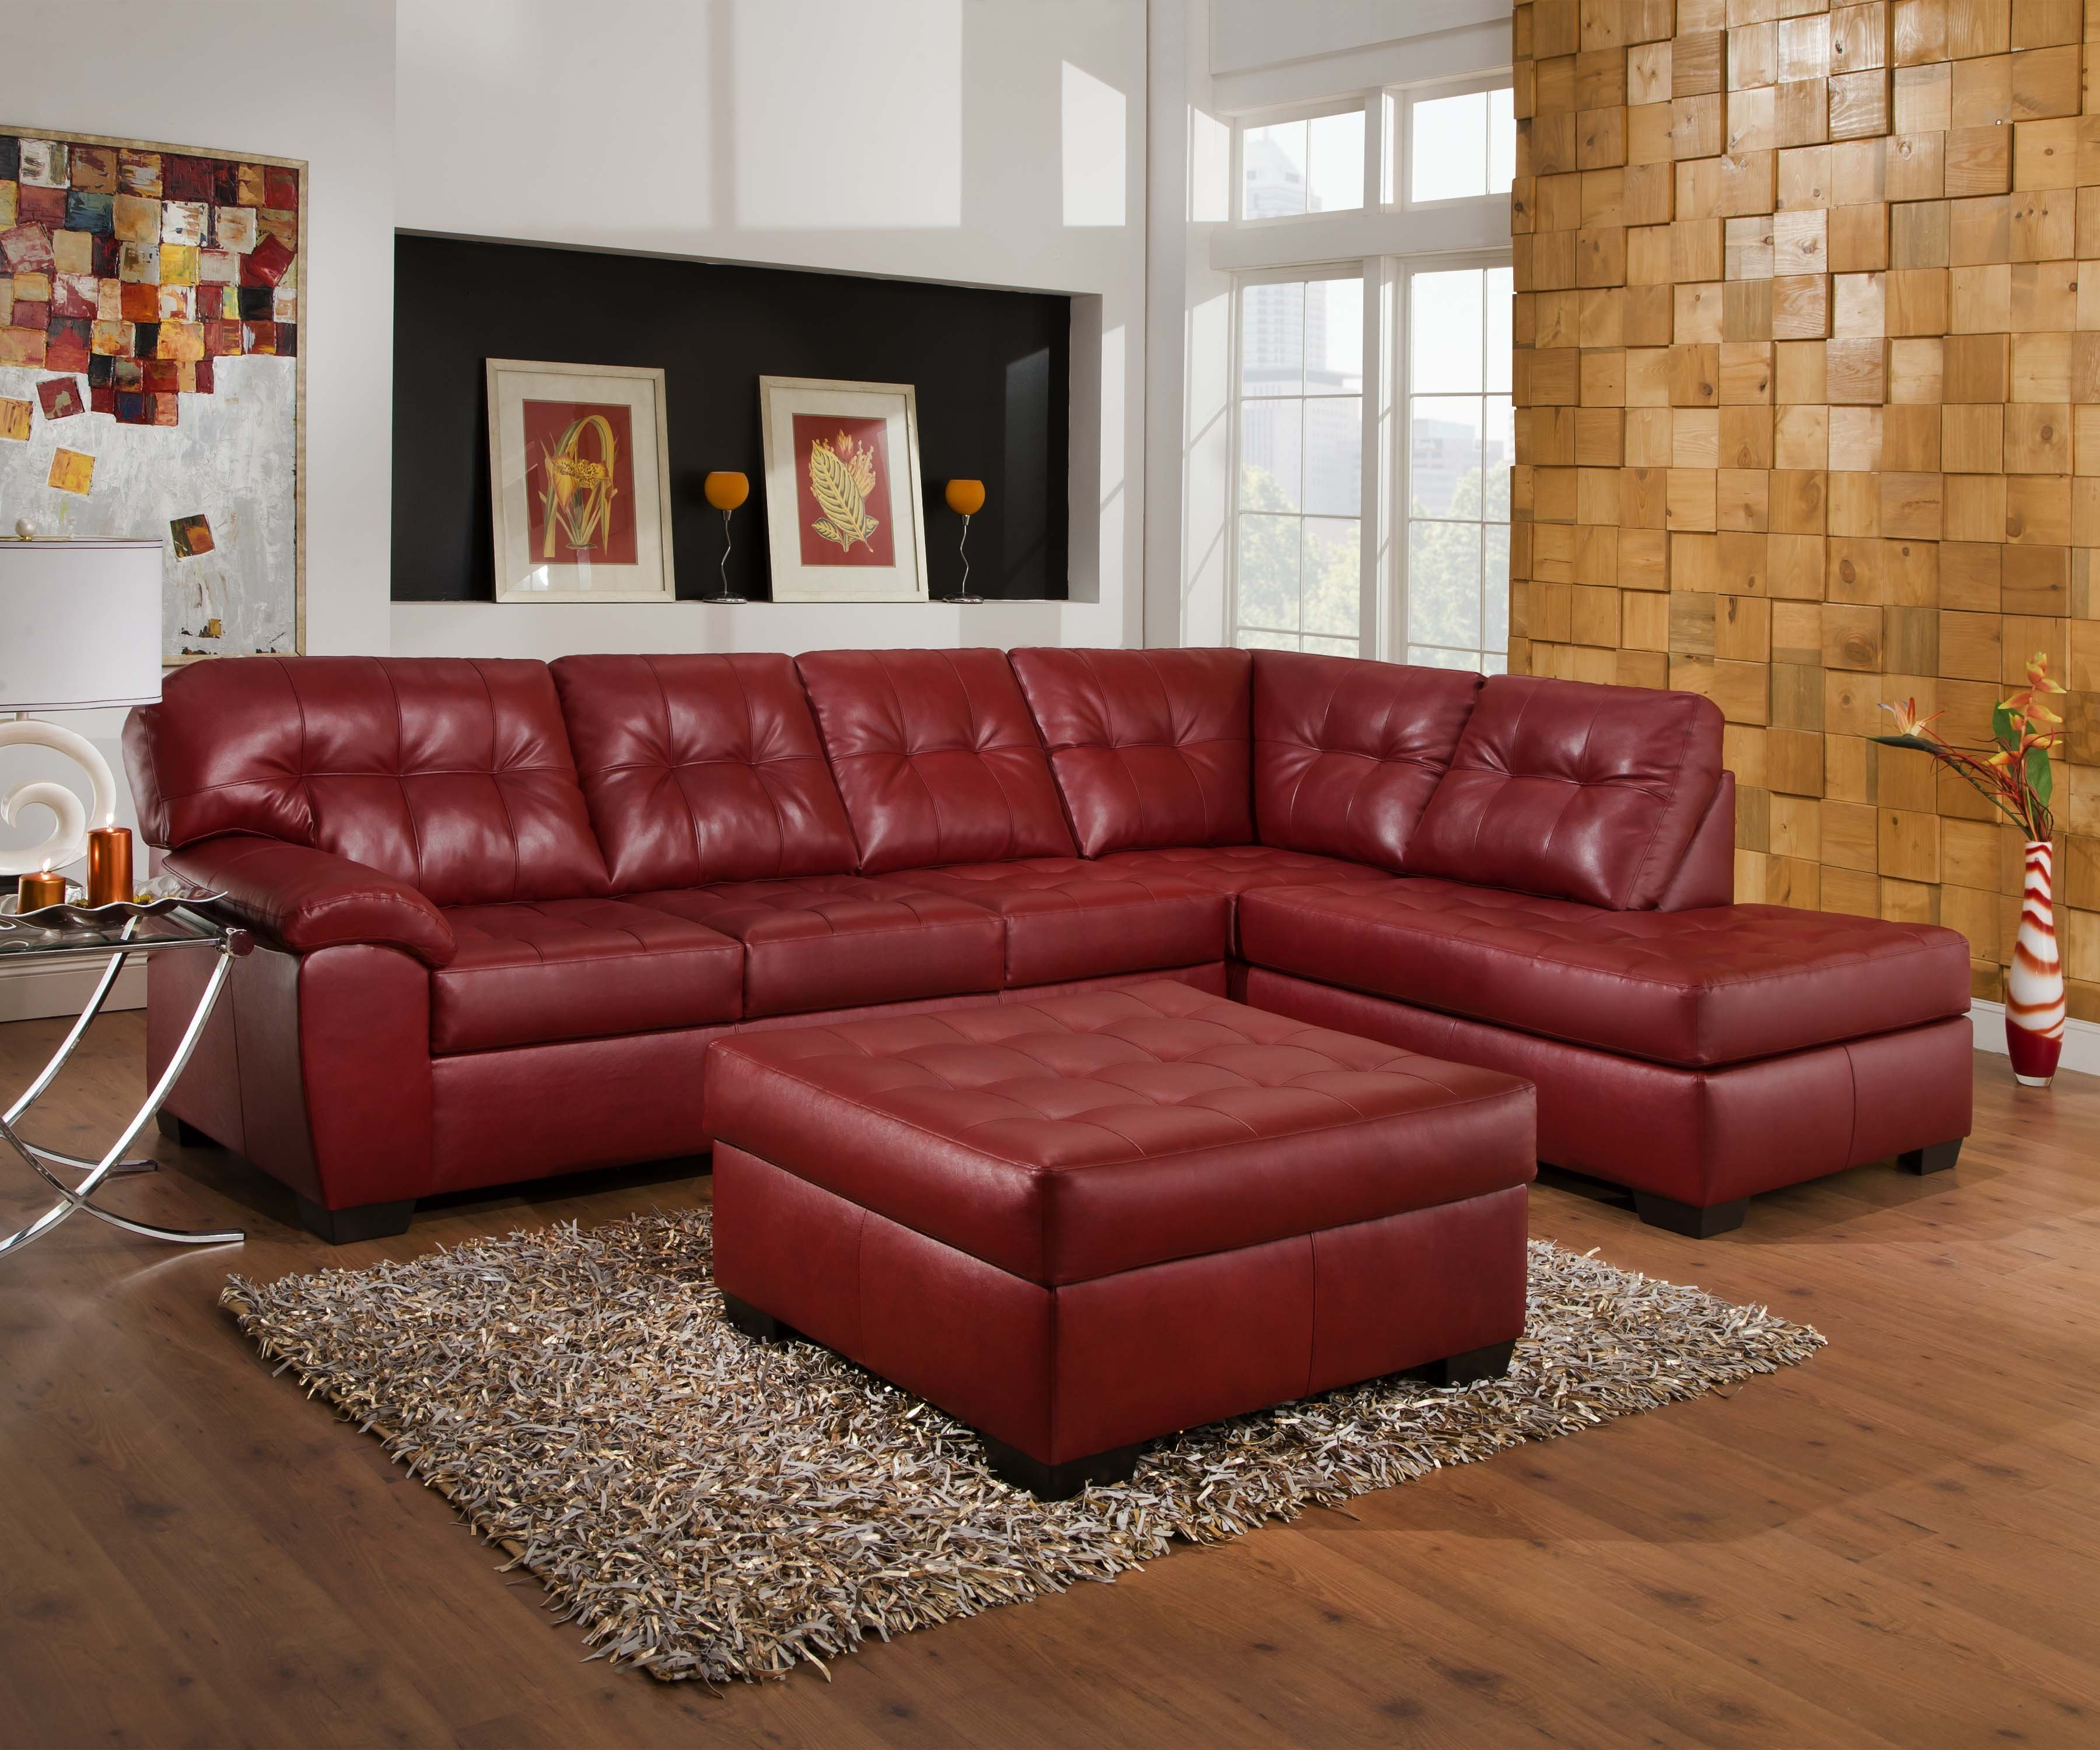 Maroon Living Room Furniture Springfield Furniture Direct Quality Furniture Discount Prices